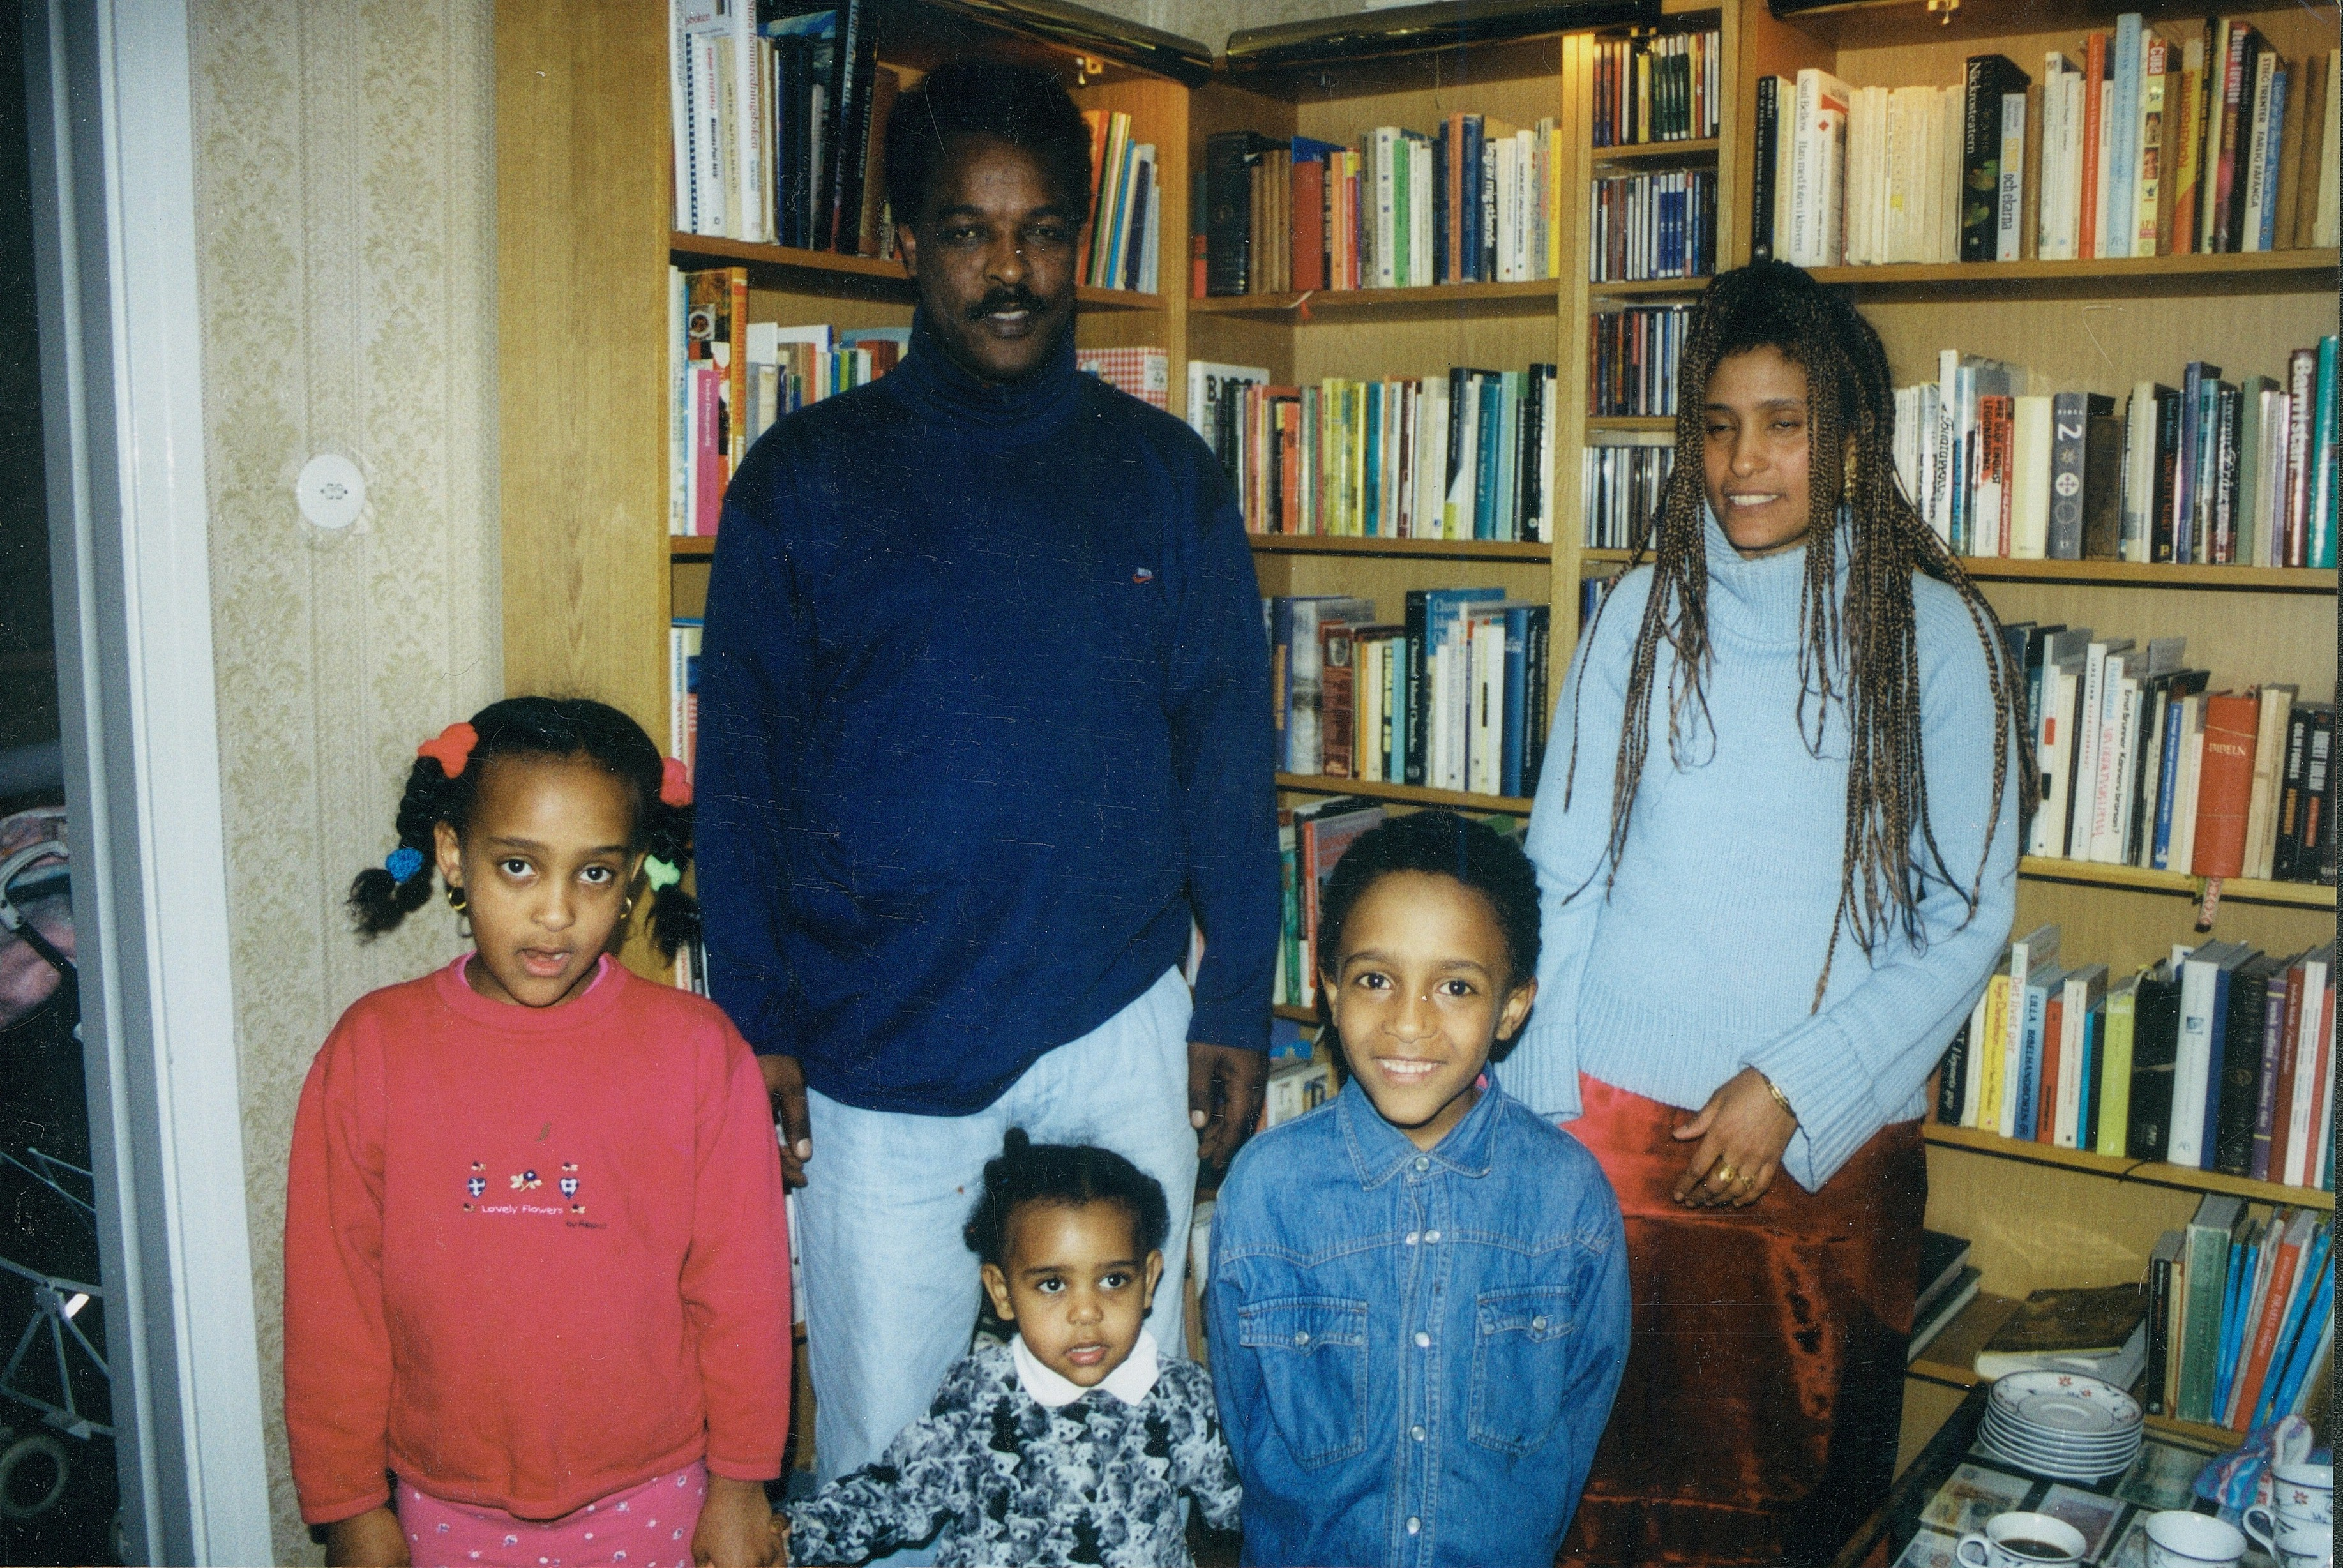 Dawit Isaak with wife Sofia Berhane and children Betlehem, Danait and Yoran. Taken in Gothenburg, Sweden, in 2000. Photo: Milvi Olander.